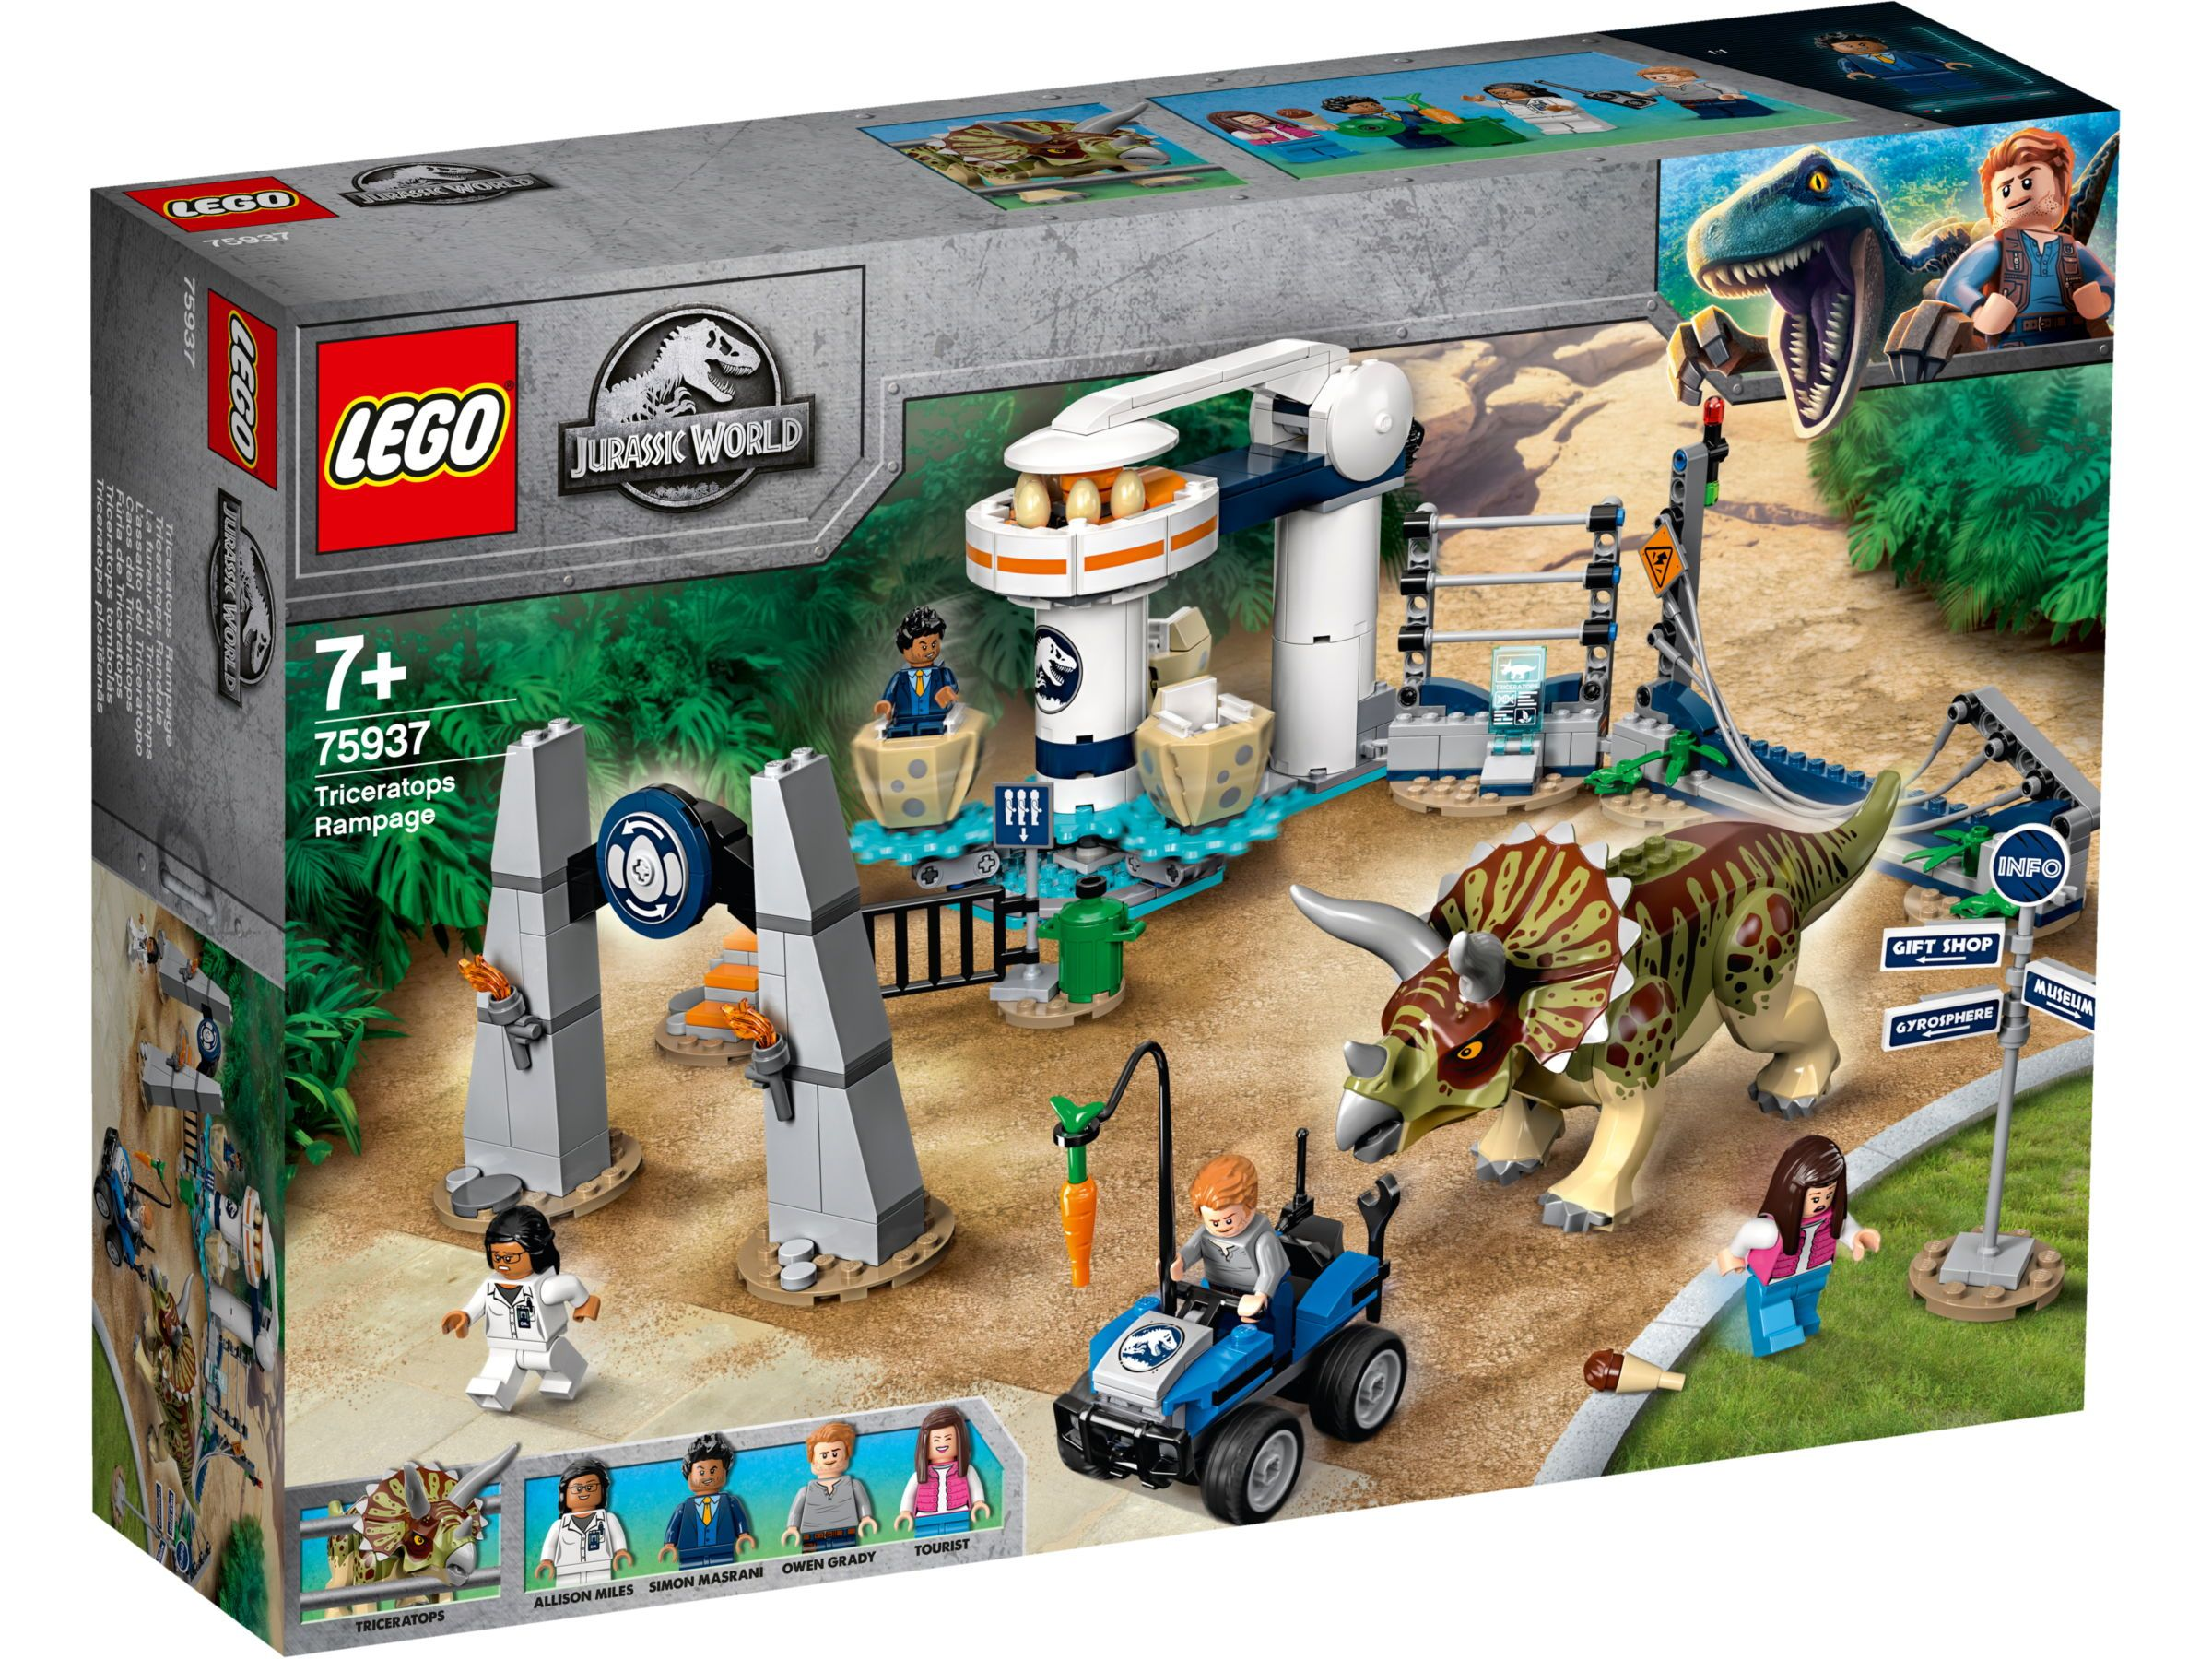 New Lego Jurassic World 2 Owen Grady Minifigure From Set 75930